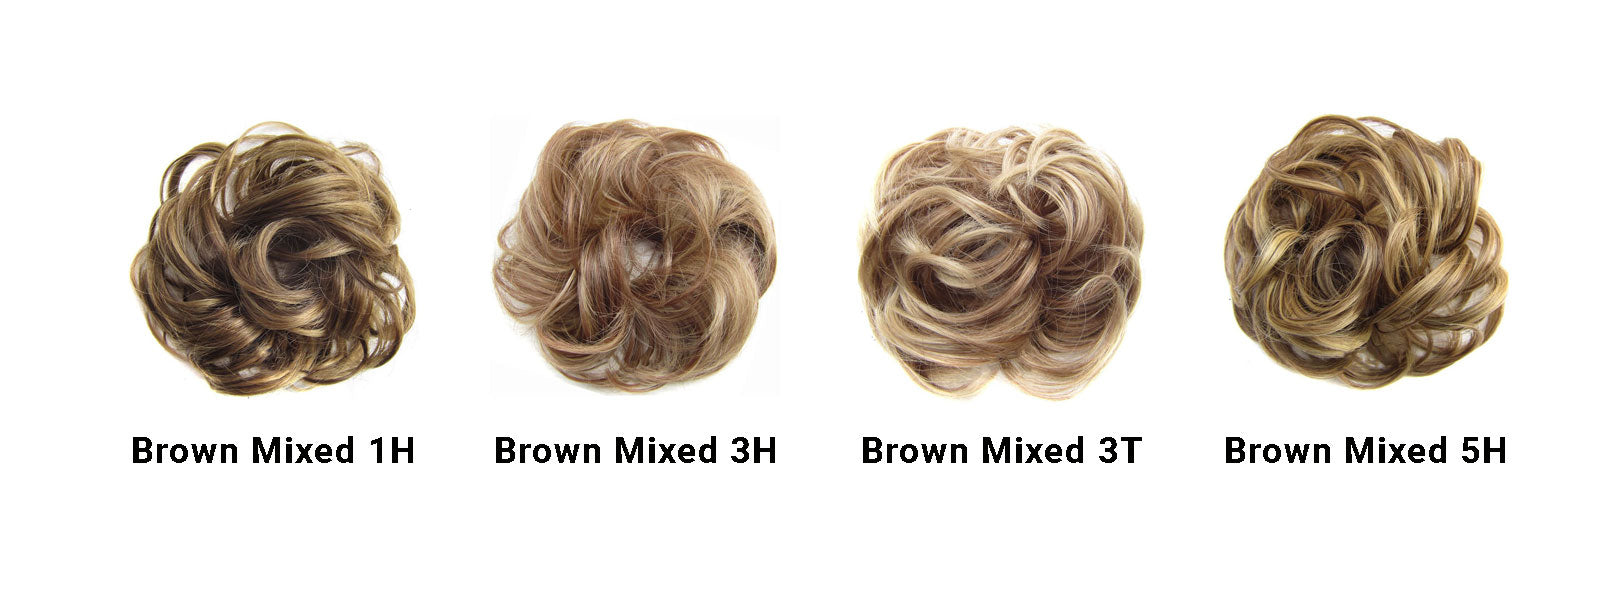 Messy Bun Brown Mixed Set